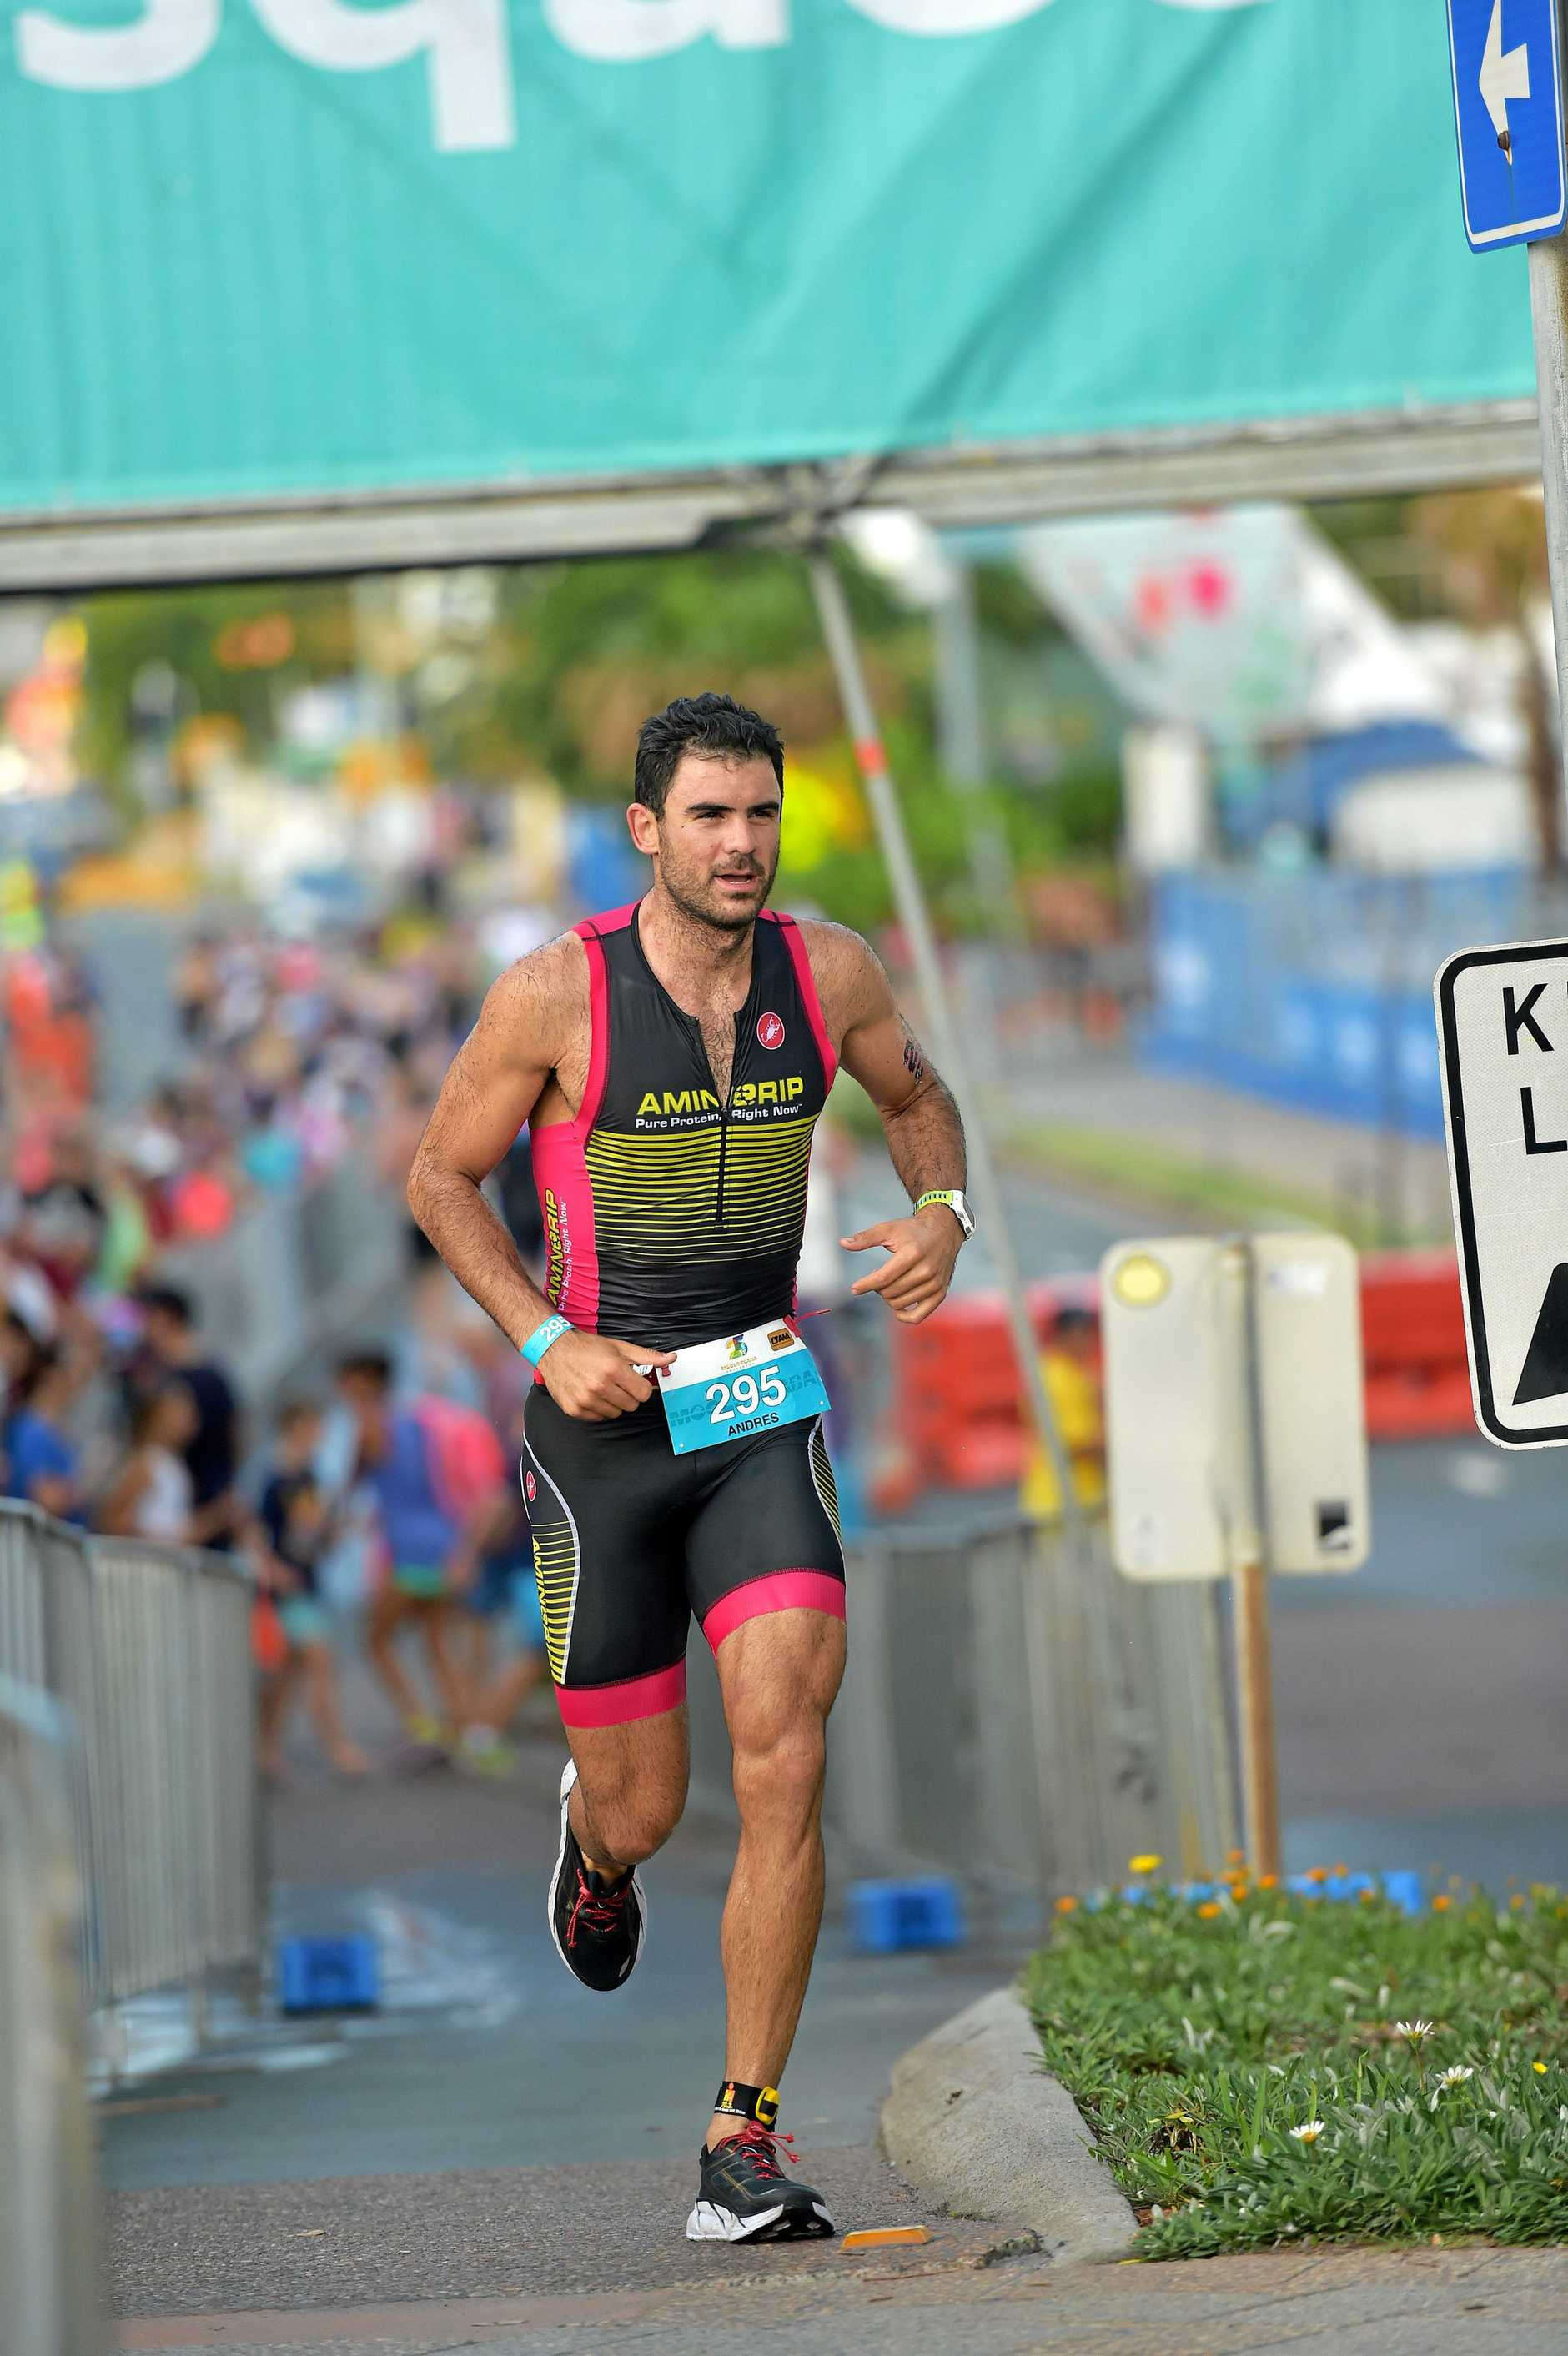 CROWD-PLEASER: More than 4000 people are set to compete in the open and age group categories of the Mooloolaba Triathlon on Sunday.